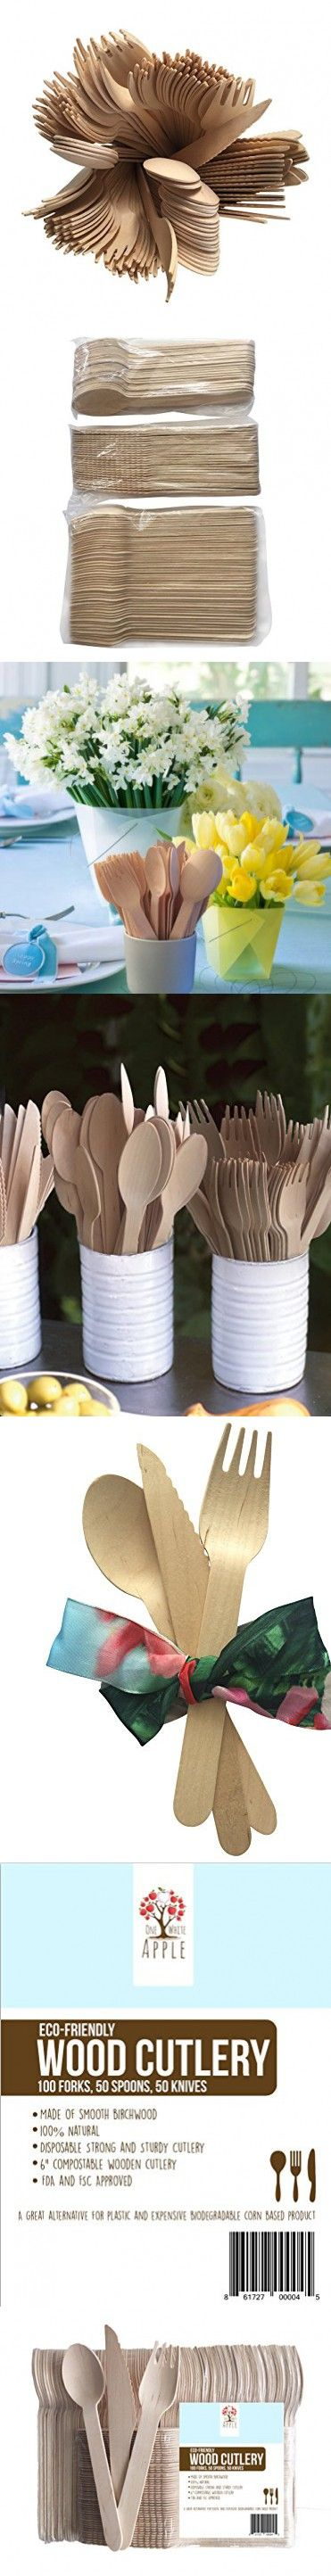 """Wooden Disposable Cutlery set- 200pc, 100 Forks, 50 Spoons, 50 Knives, 6"""" Length Eco-Friendly Biodegradable Compostable utensils GO GREEN!"""